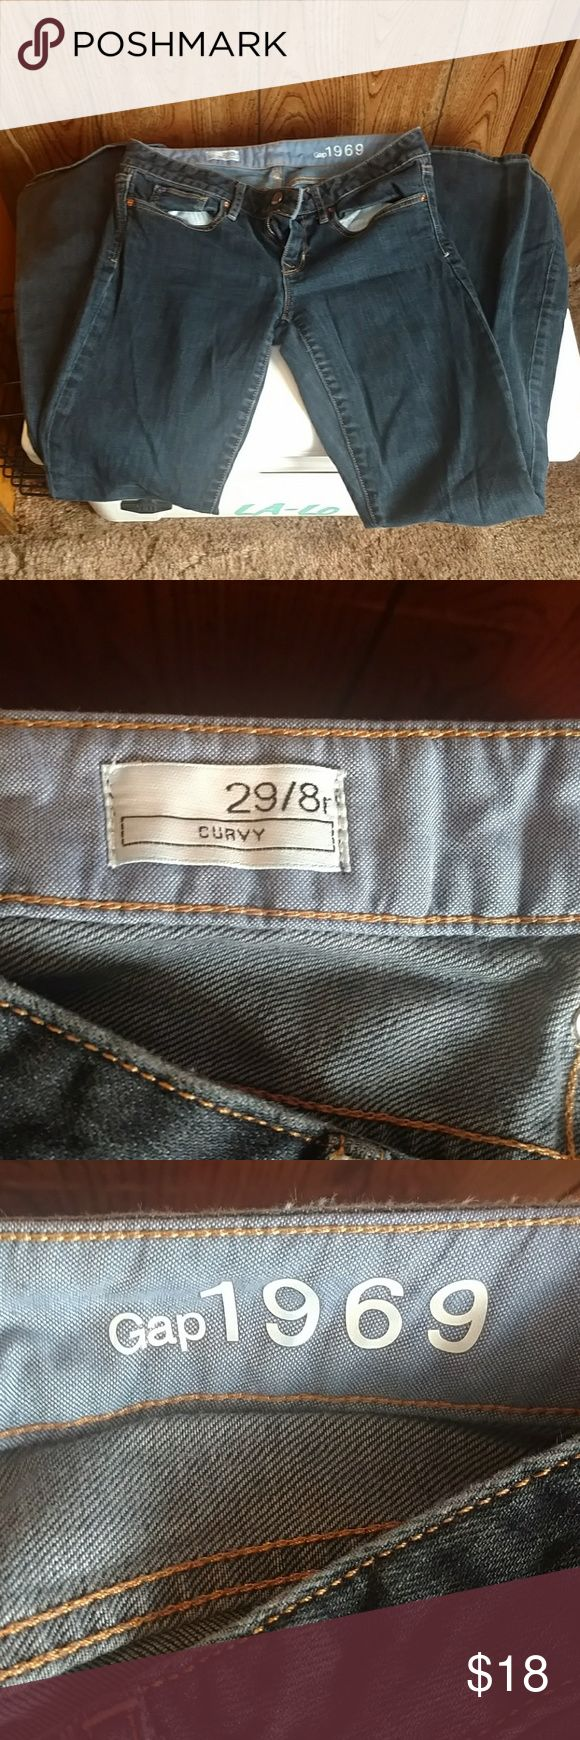 Gap jeans Dark blue GAP jeans. Curvy profile GAP Jeans